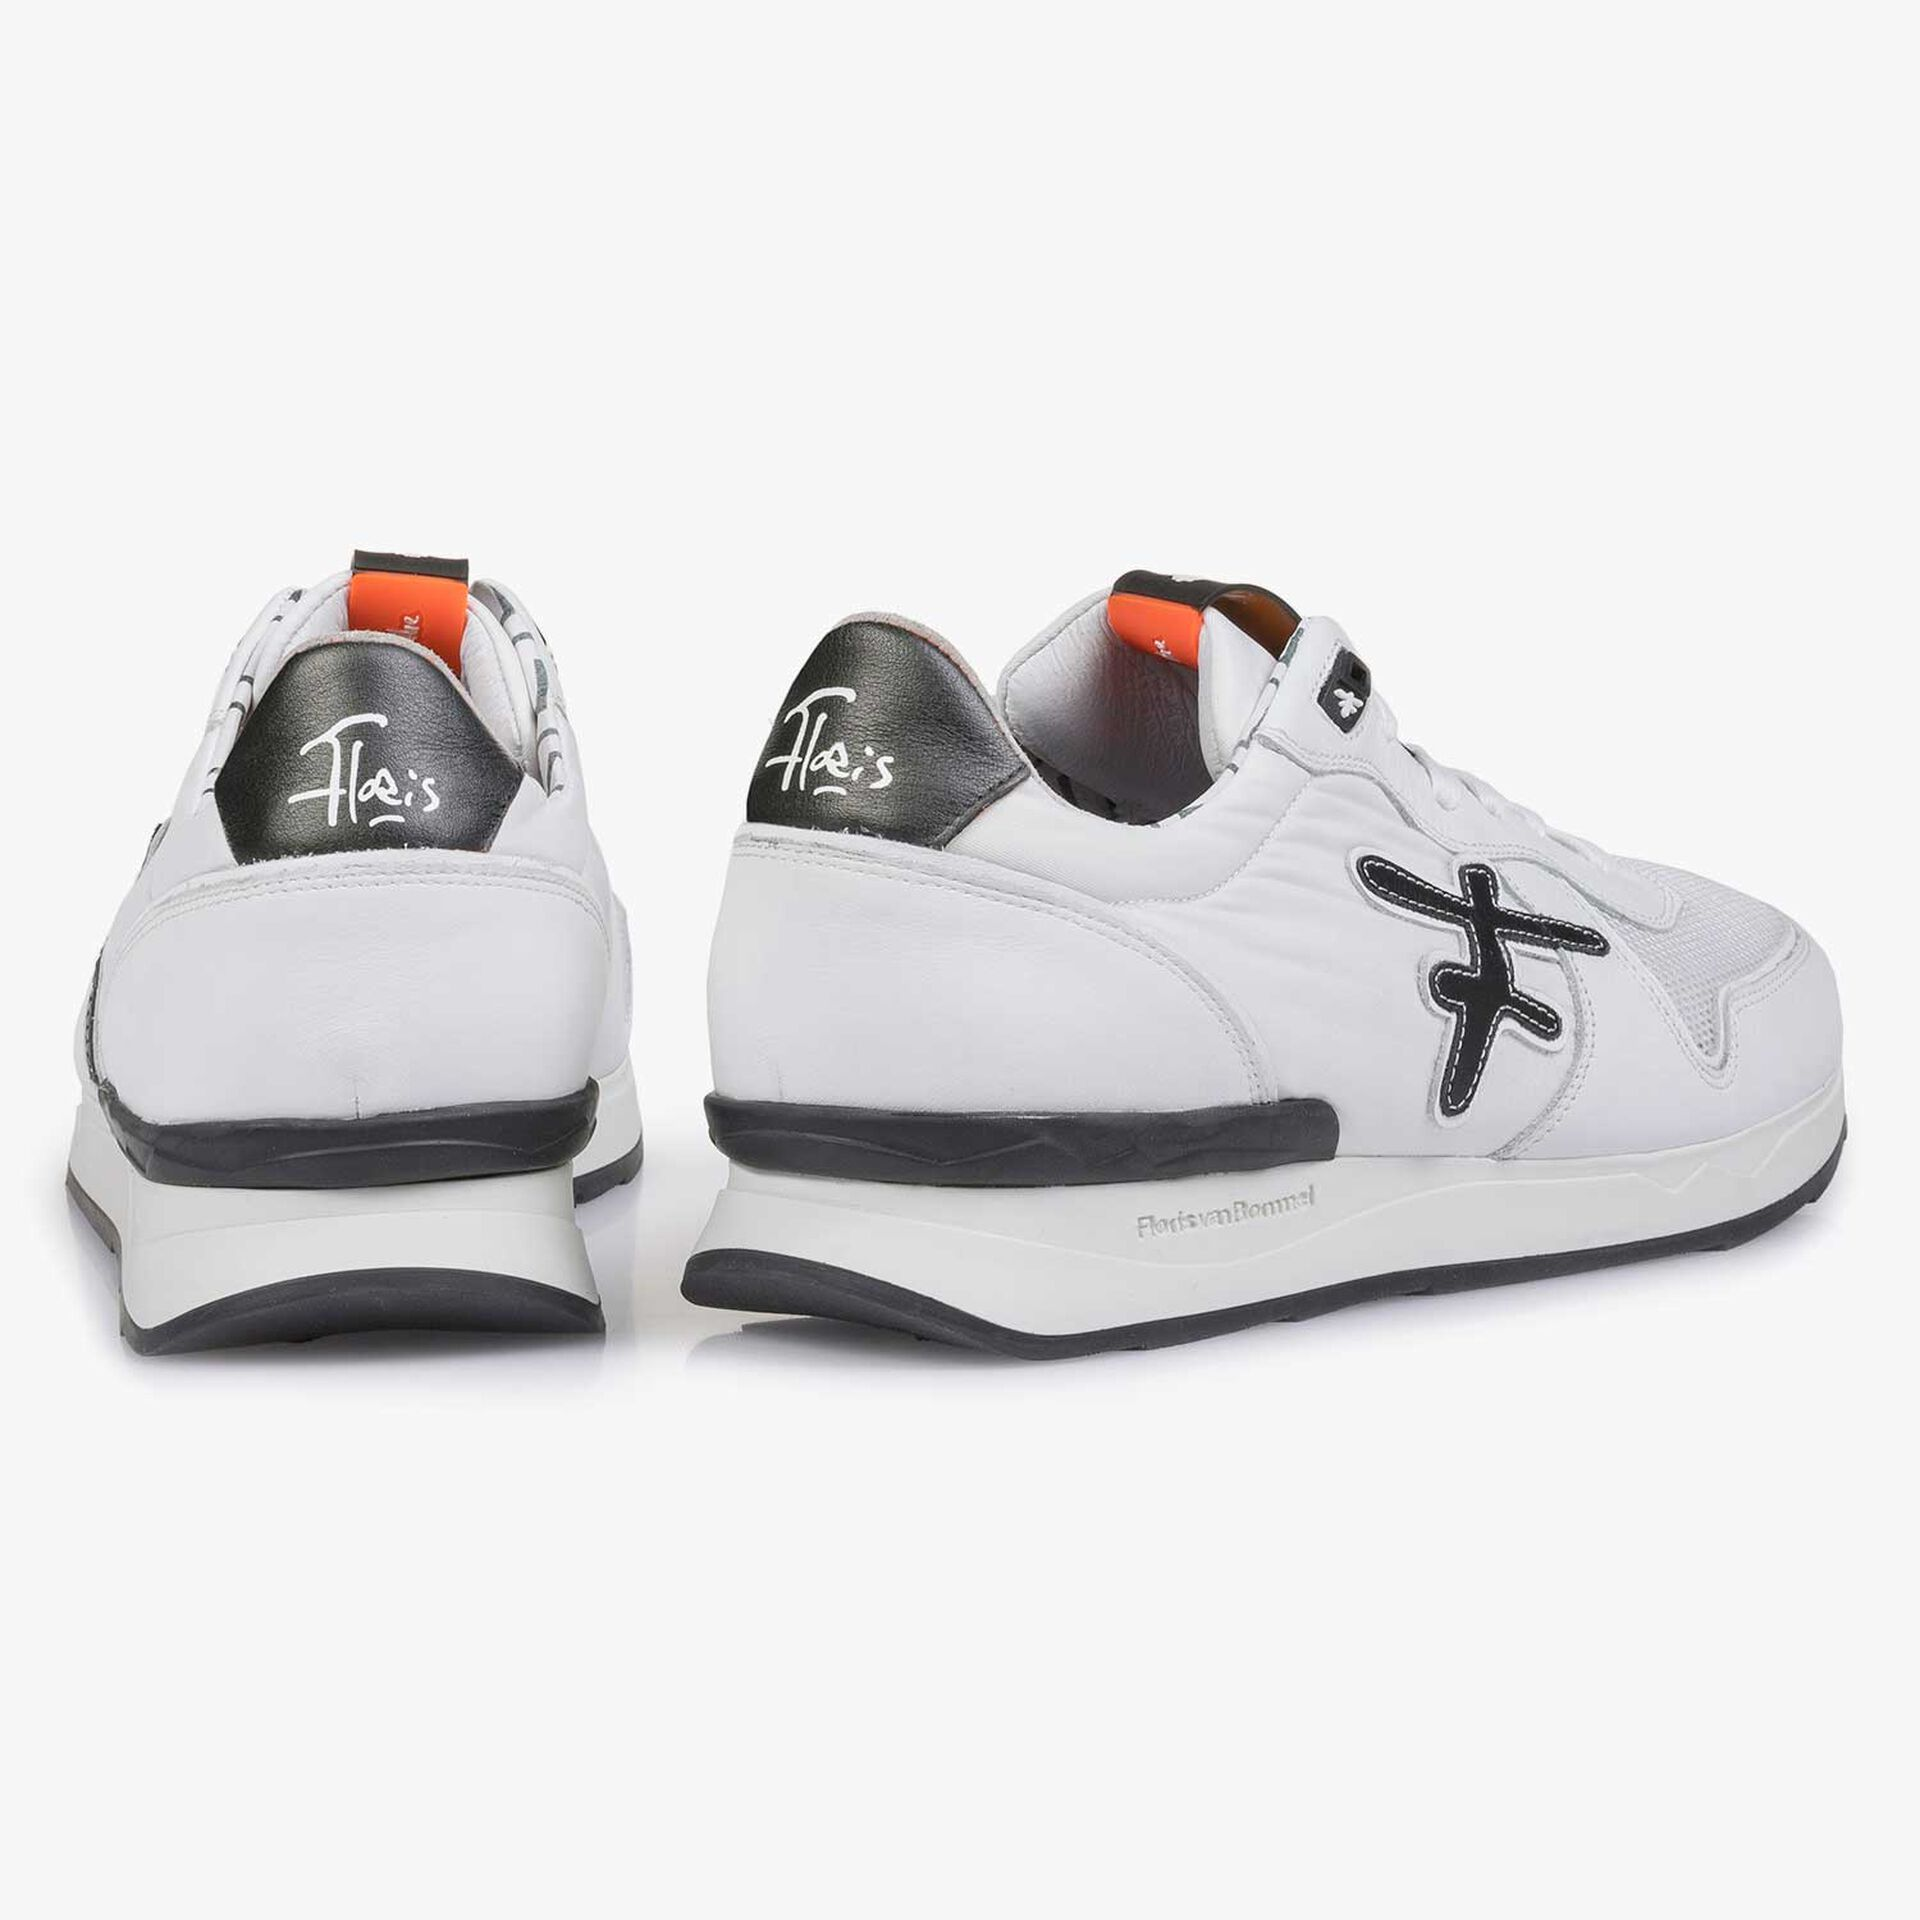 White leather sneaker with textile patches